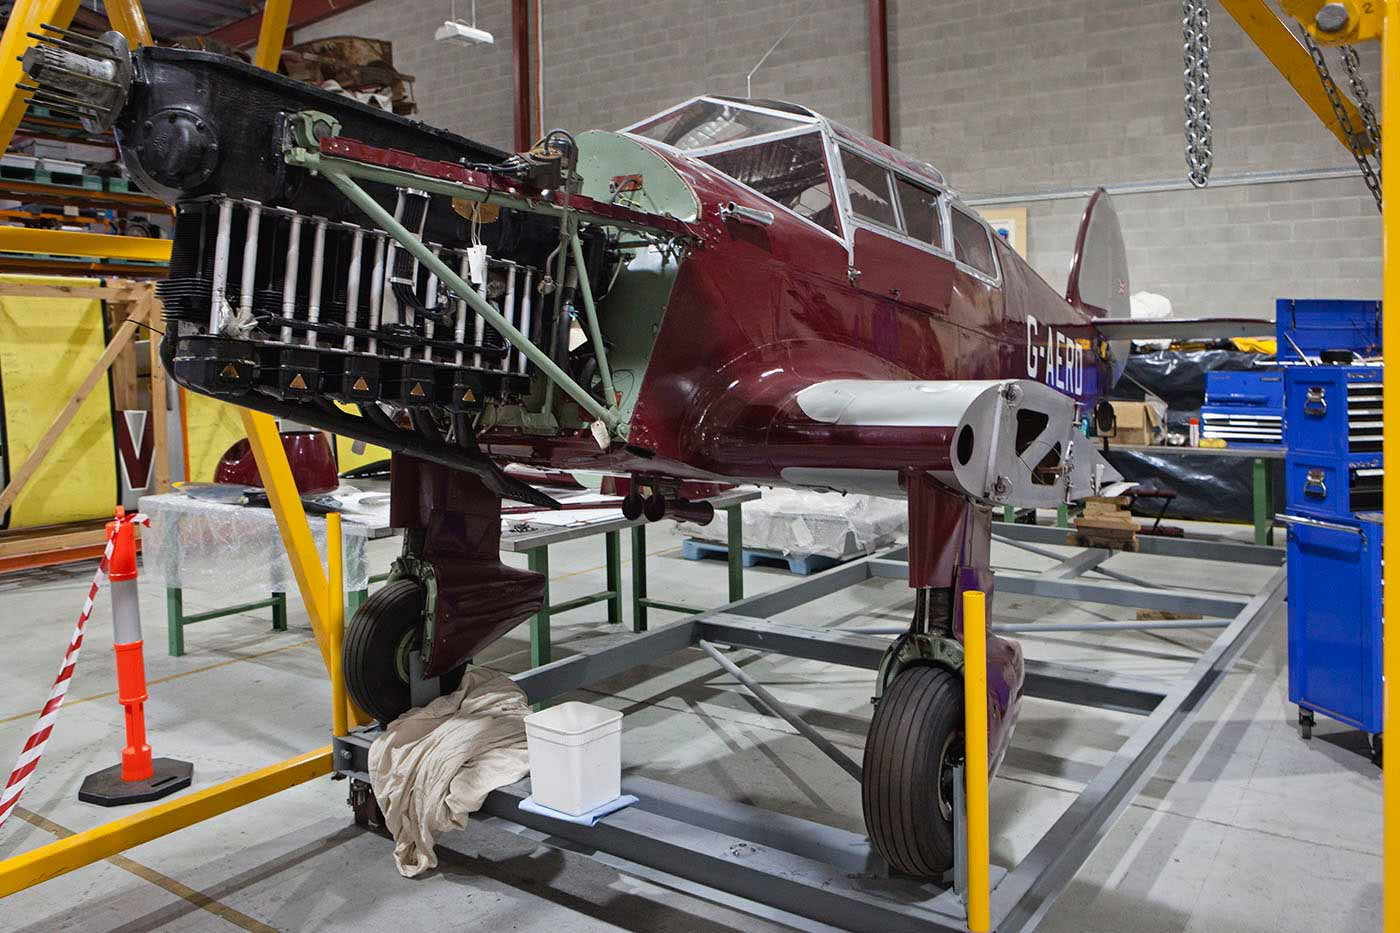 The Gull's Gipsy Six engine undergoing maintenance in the workshop - click to view larger image